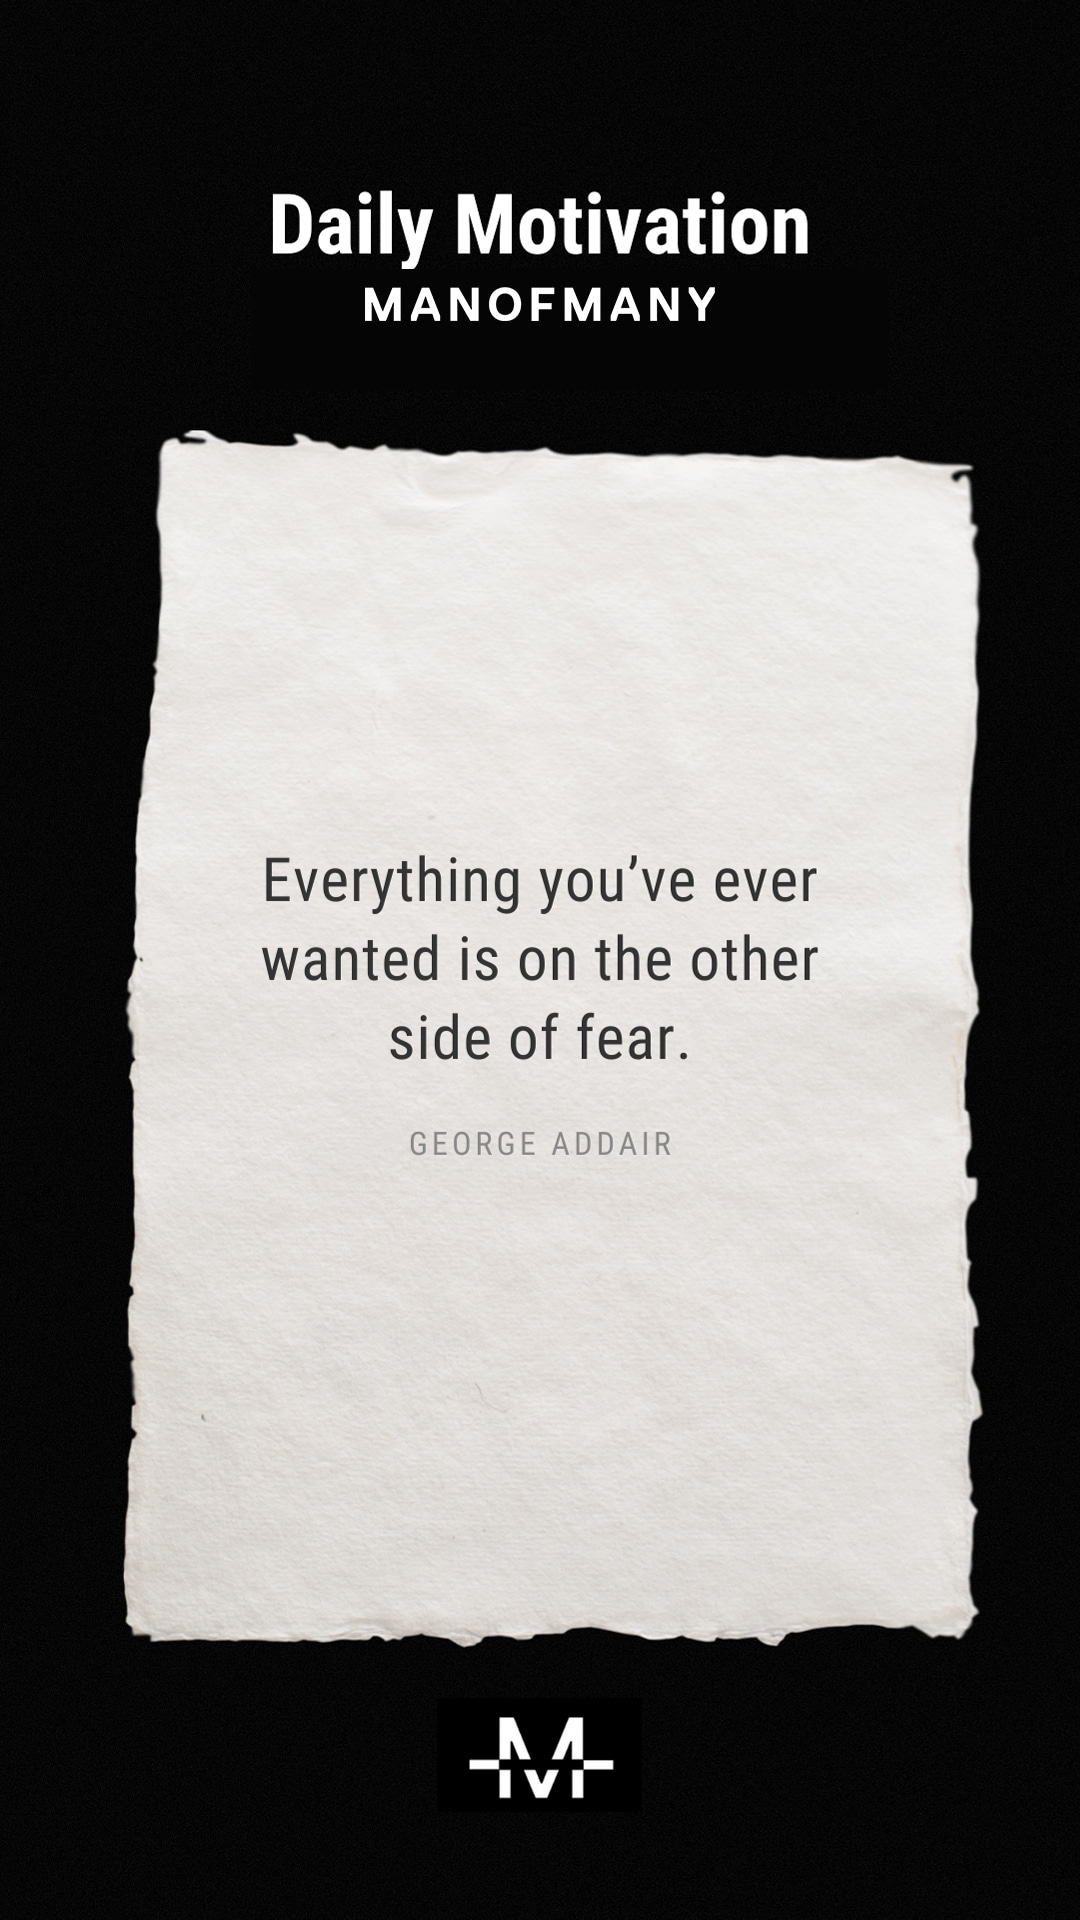 Everything you've ever wanted is on the other side of fear. –George Addair quote